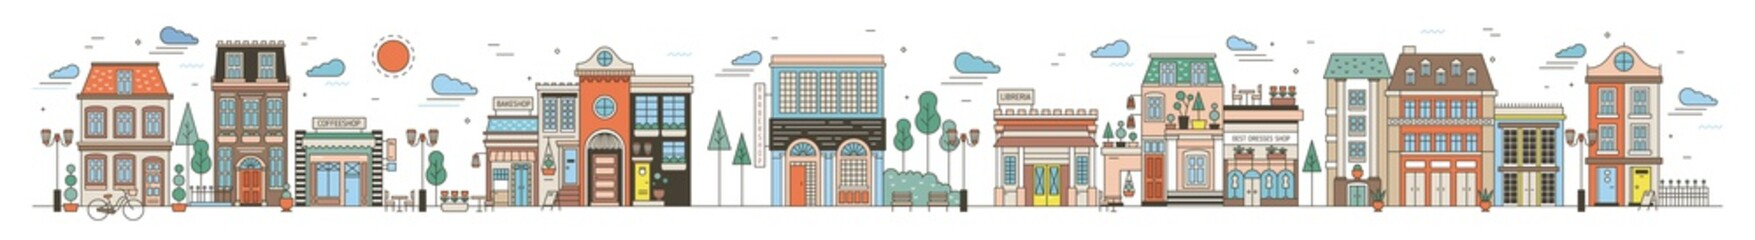 Colorful horizontal cityscape with street of European city full of elegant buildings, residential houses, stores and shops, public locations. Creative vector illustration in modern line art style.